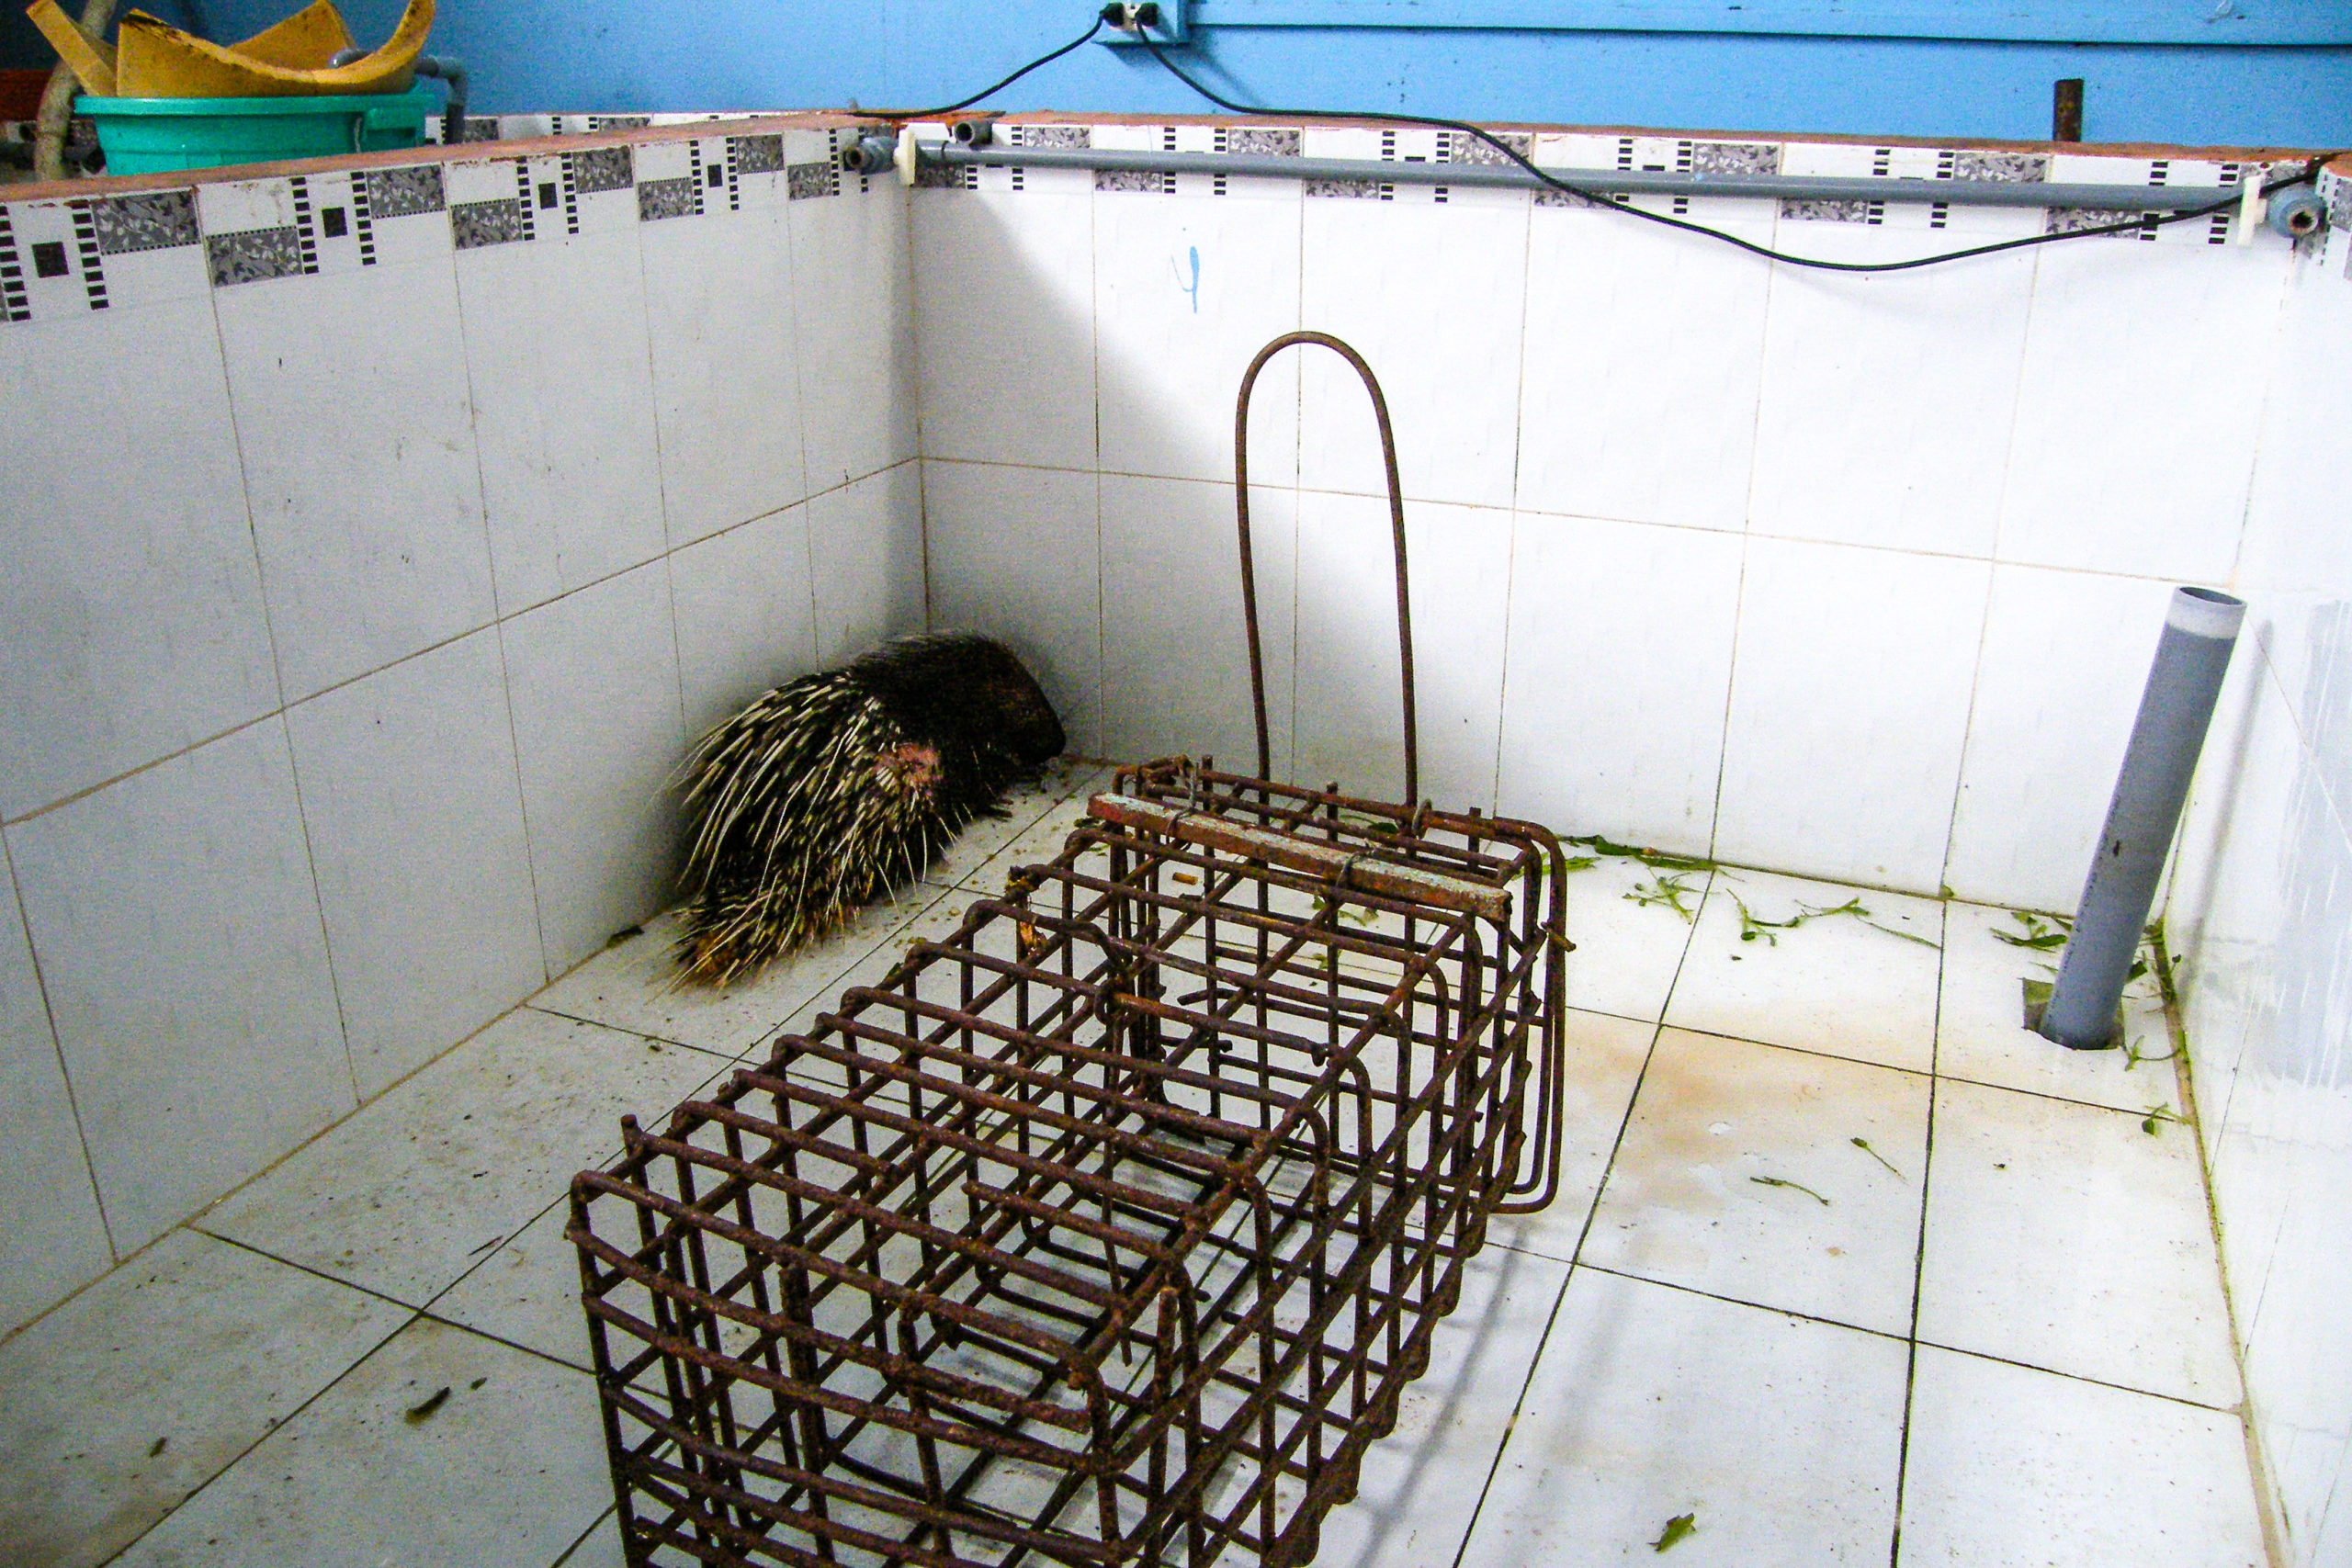 Malayan Porcupine for sale at Restaurant